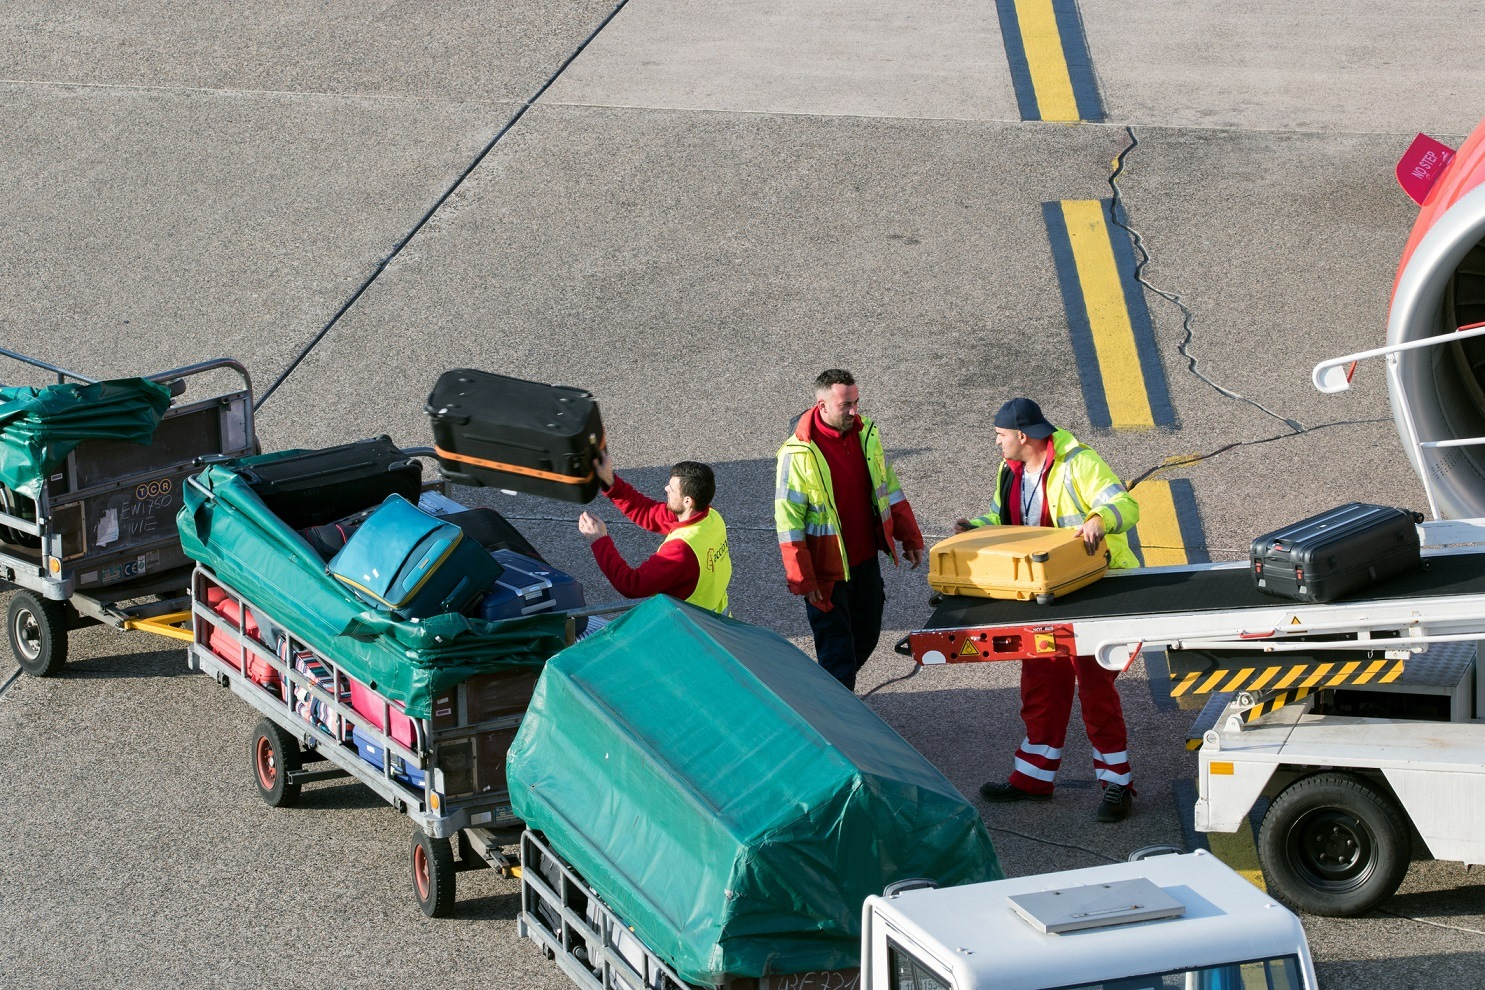 Baggage Handler loading luggage